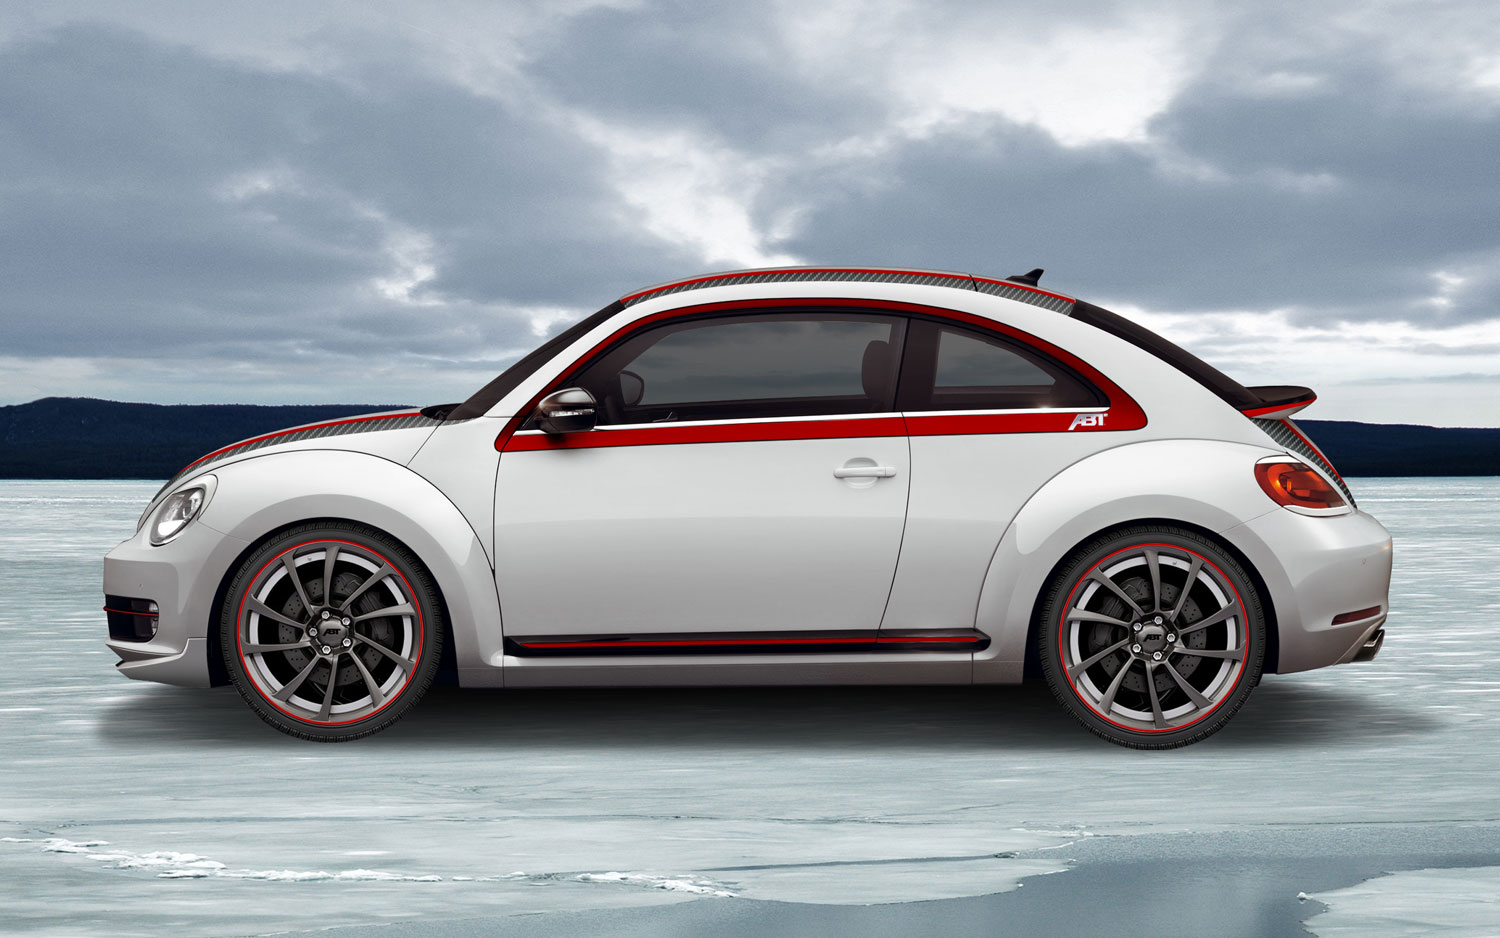 abt introduces new volkswagen beetle styling performance accessories. Black Bedroom Furniture Sets. Home Design Ideas